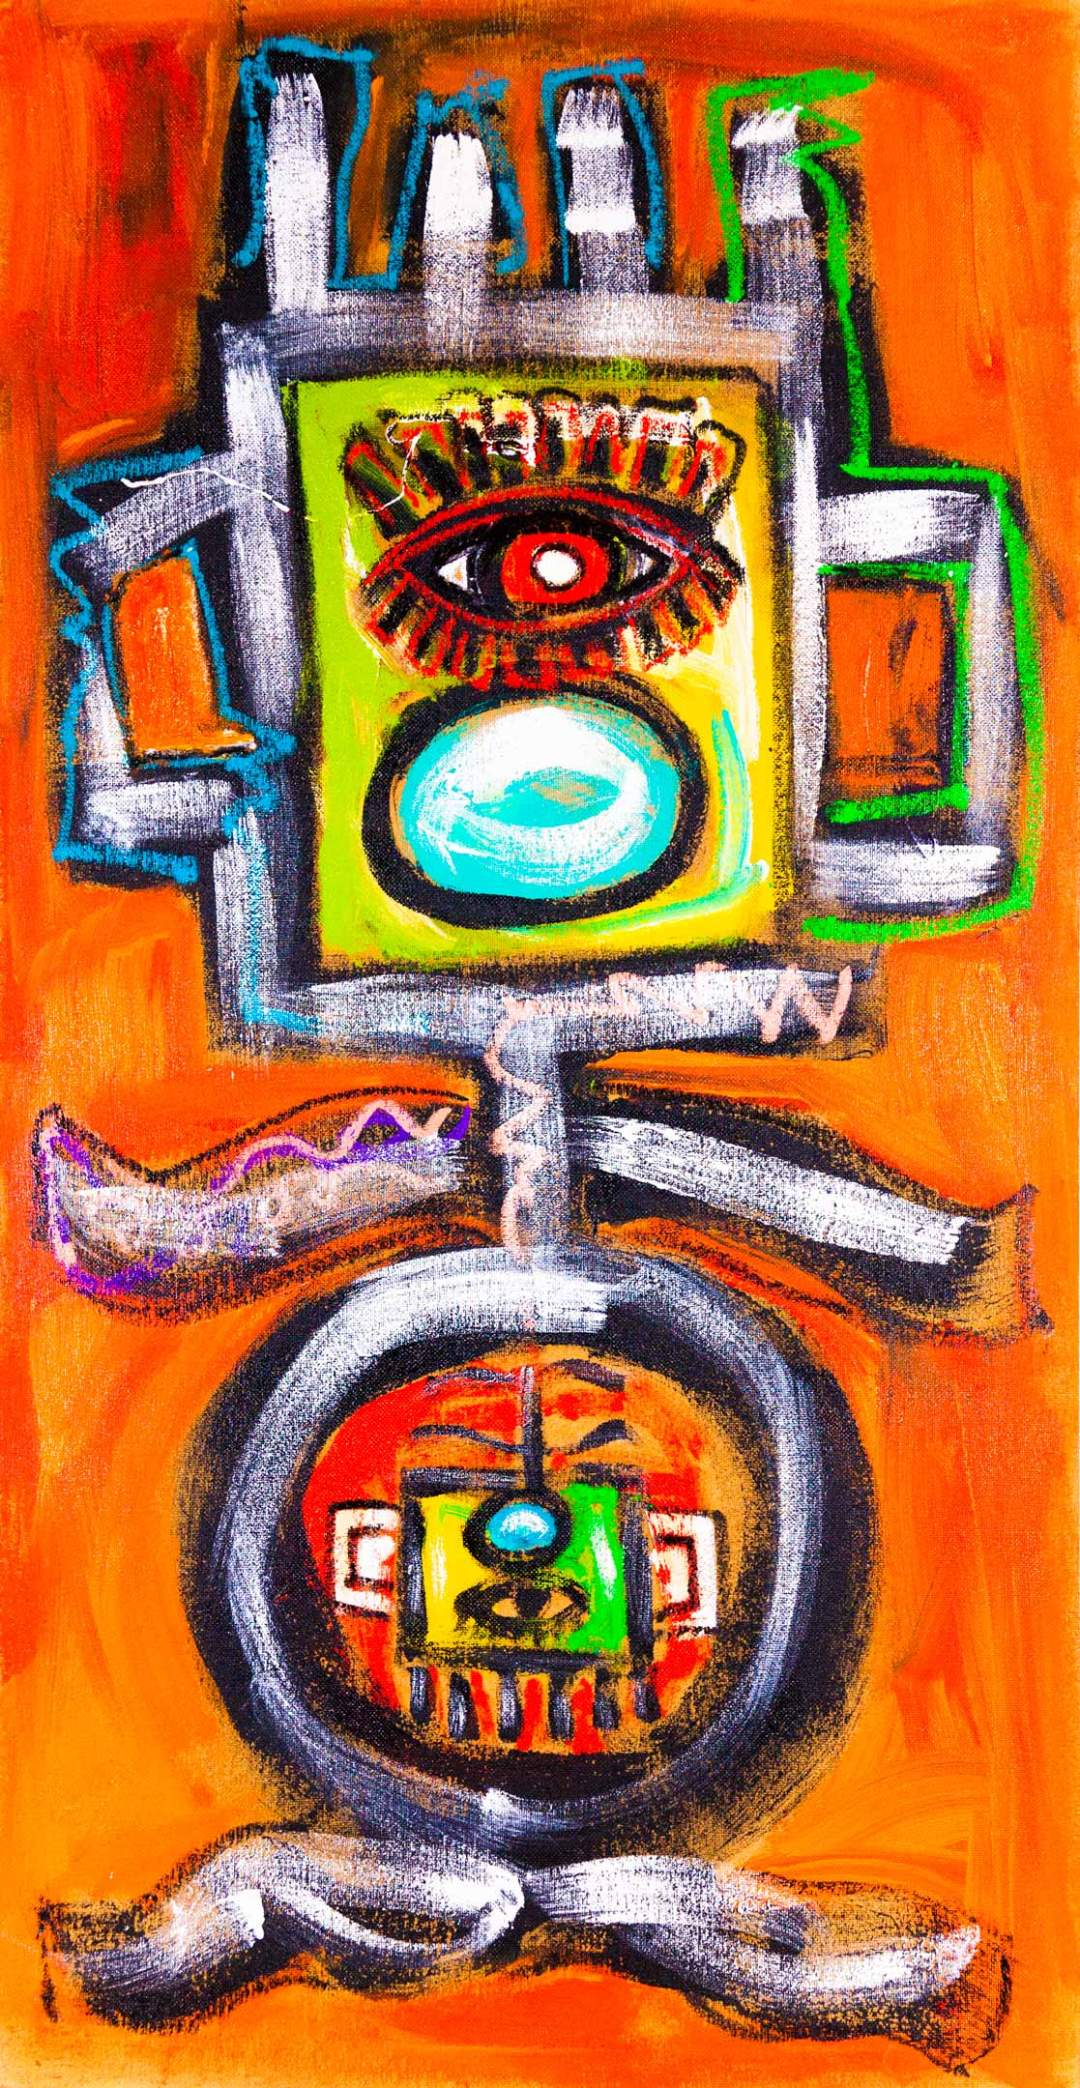 """gYg: knocked up, 35 1/4"""" x 68 1/4"""", acrylic and oil on pressboard, 2015"""